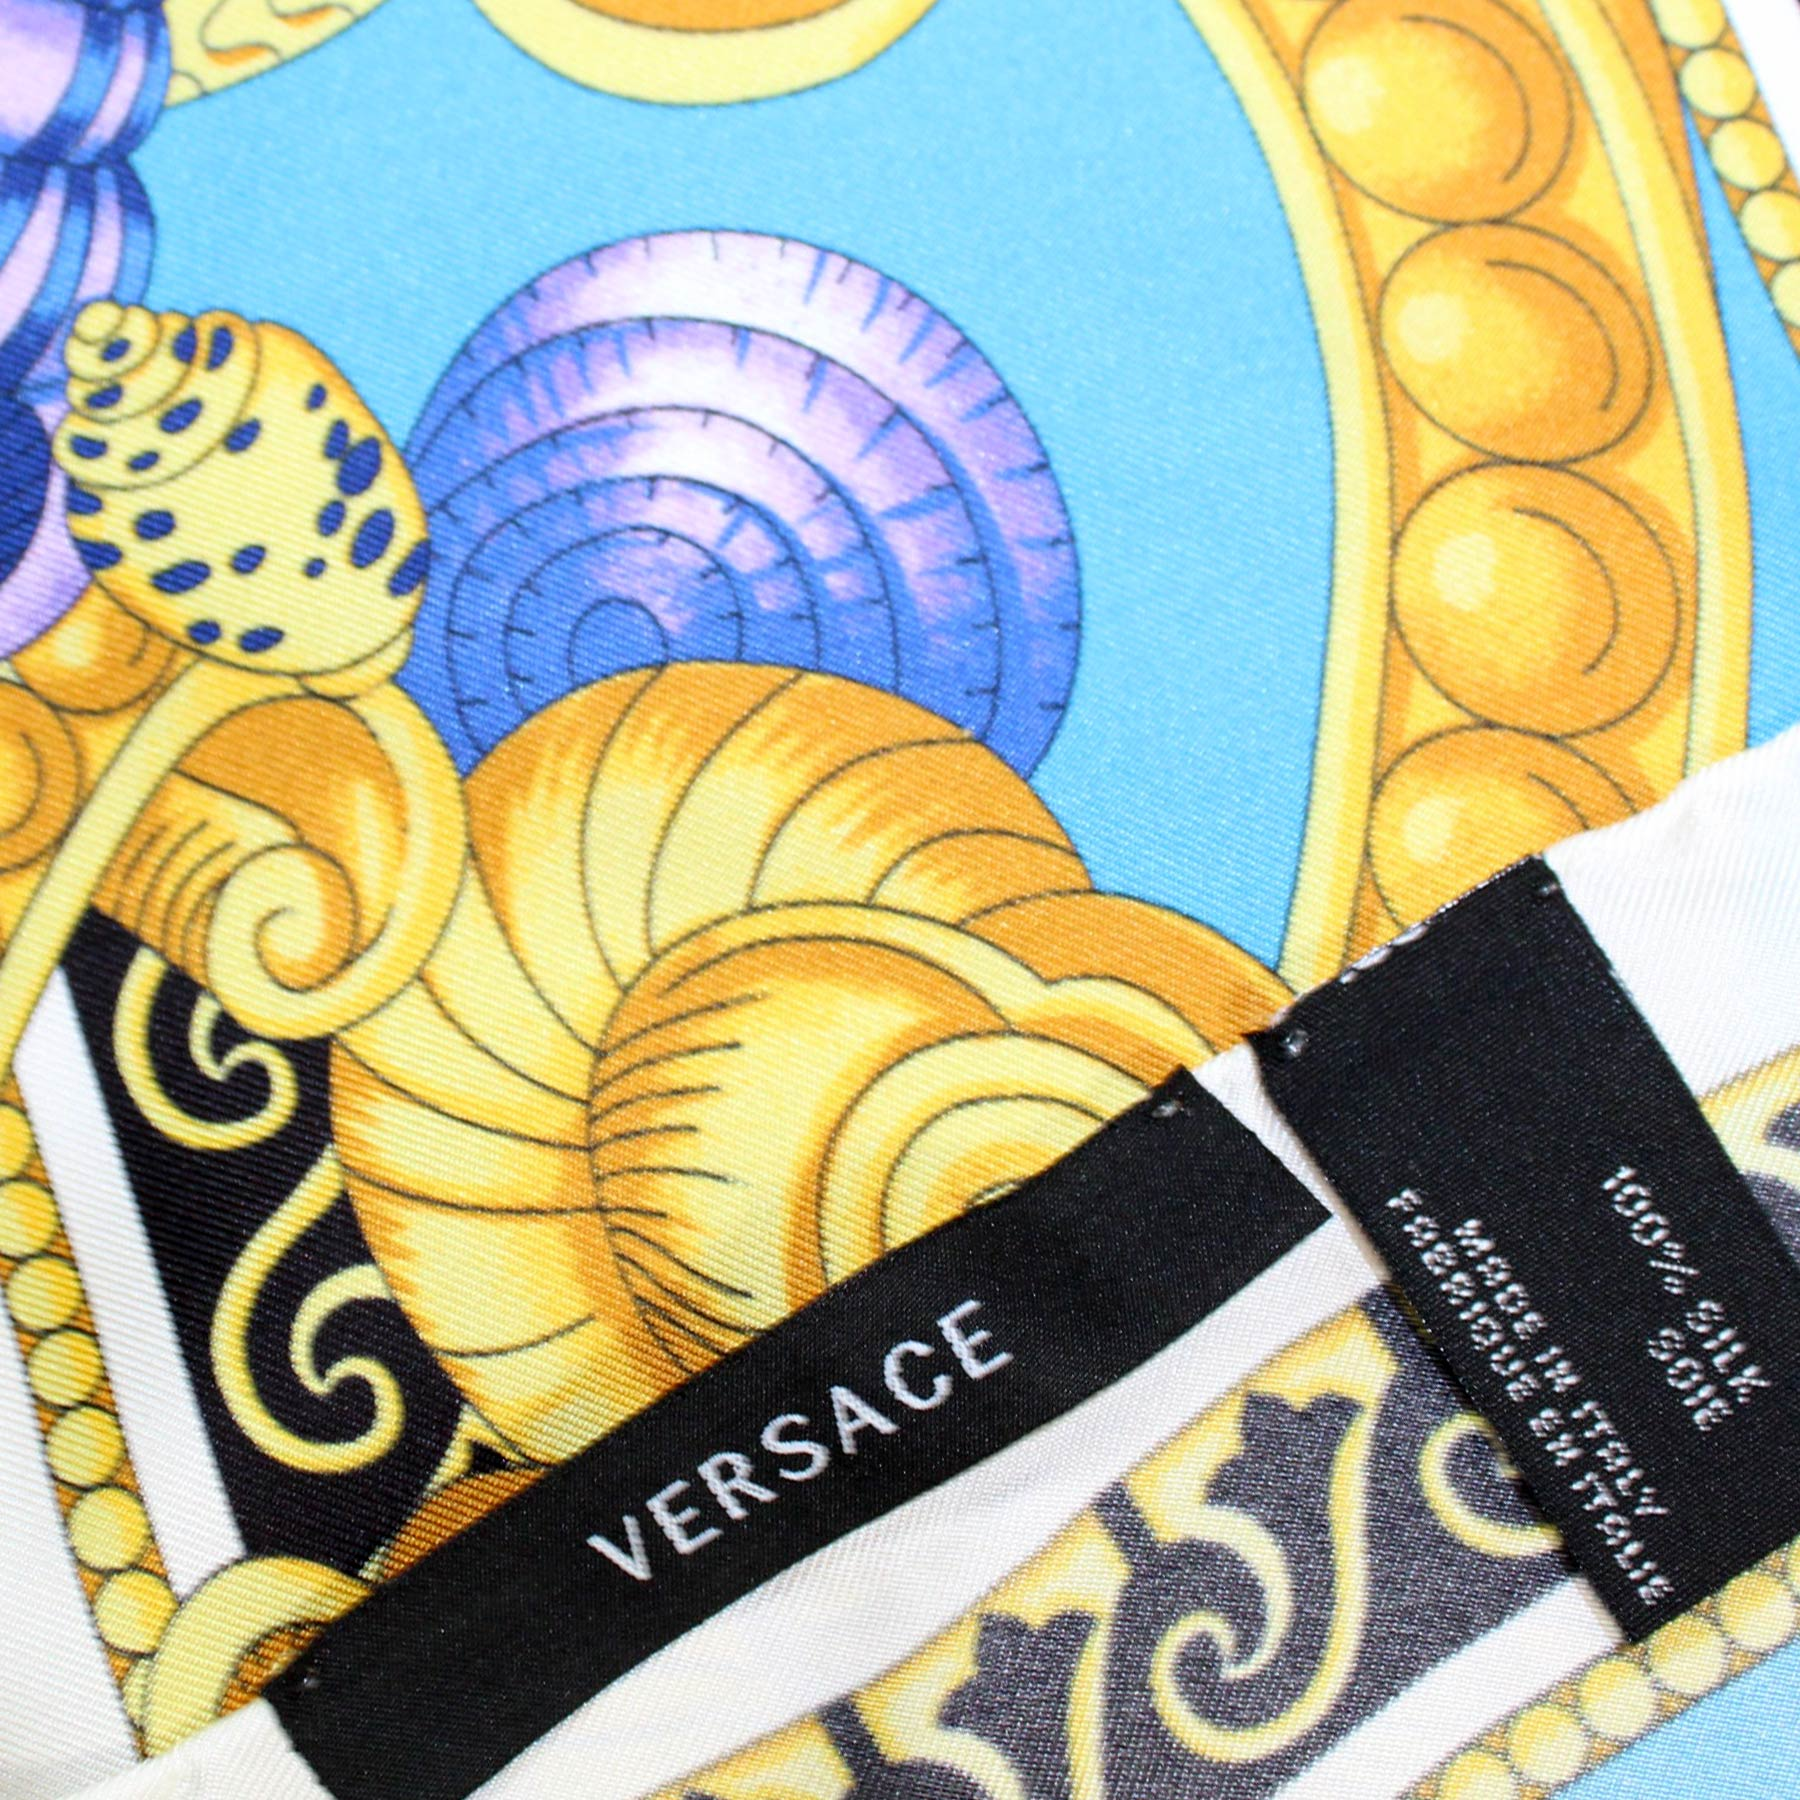 Versace Scarf Blue Gold Original Versace Gift Box Sea- Twill Silk Square Scarf